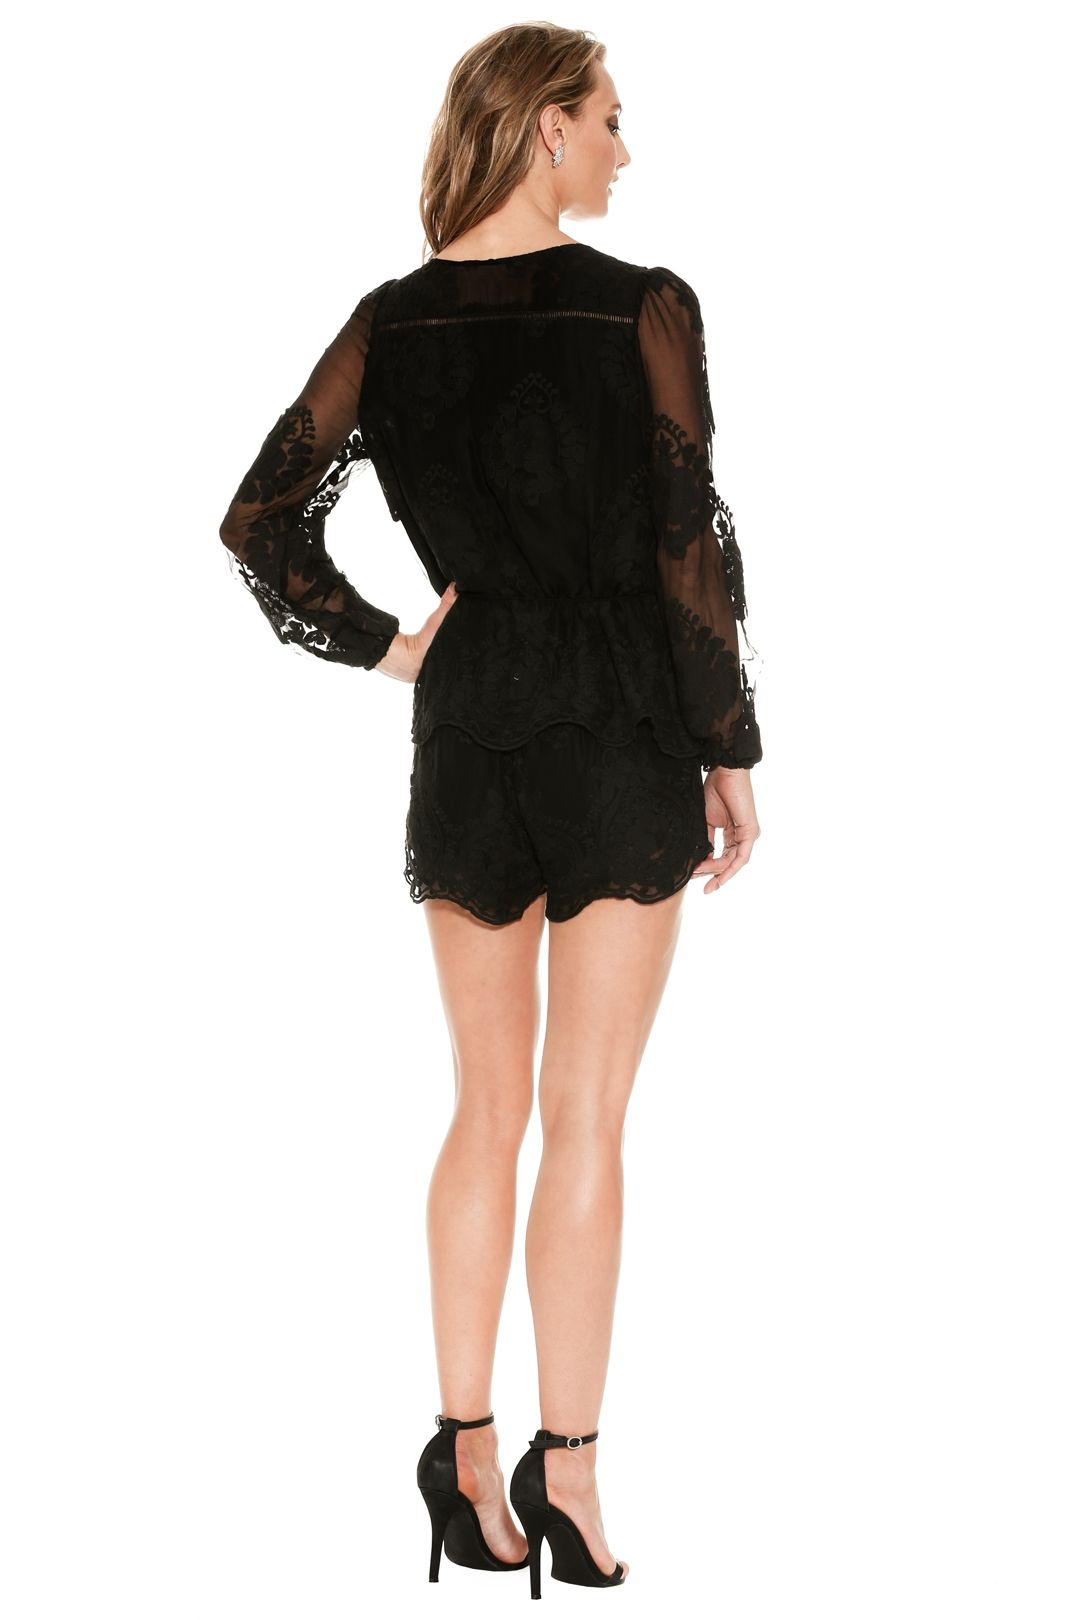 Ministry of Style - Roamer Playsuit - Black - Back